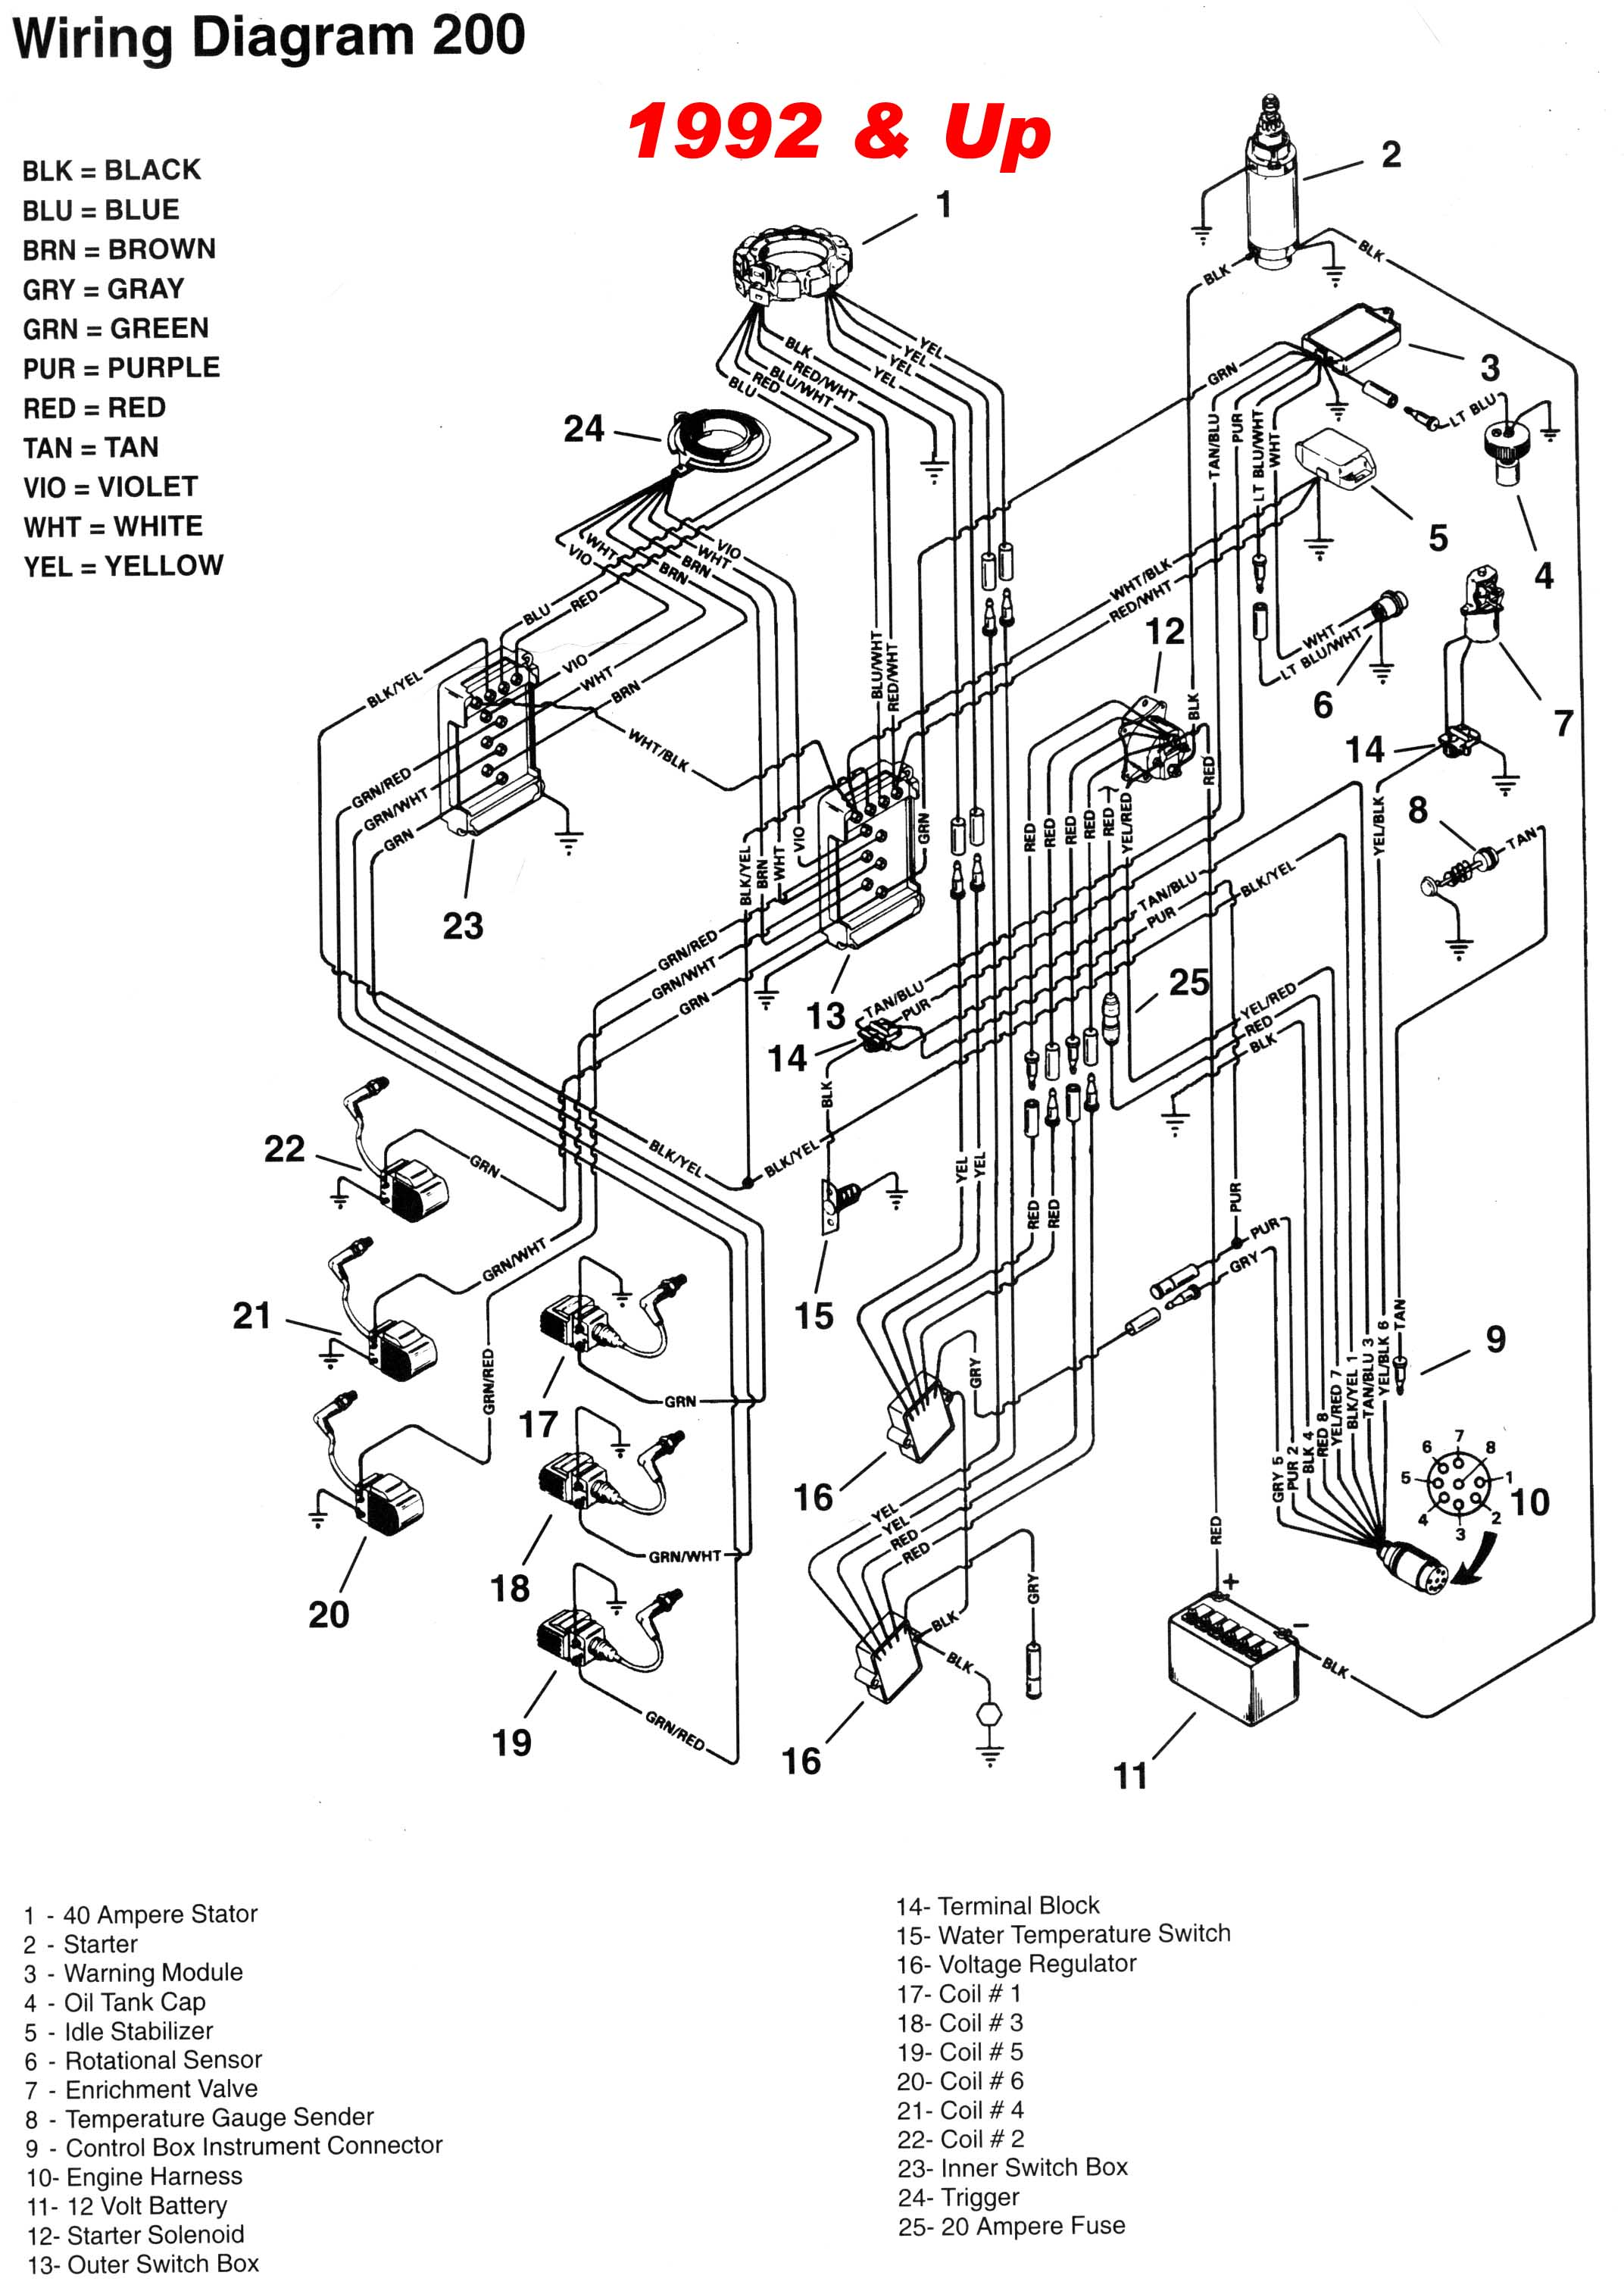 mercury_92up_200_wiring mercury outboard 2 5 and 3 0l v6 and gearcase faq mercury 14 pin wiring harness diagram at alyssarenee.co